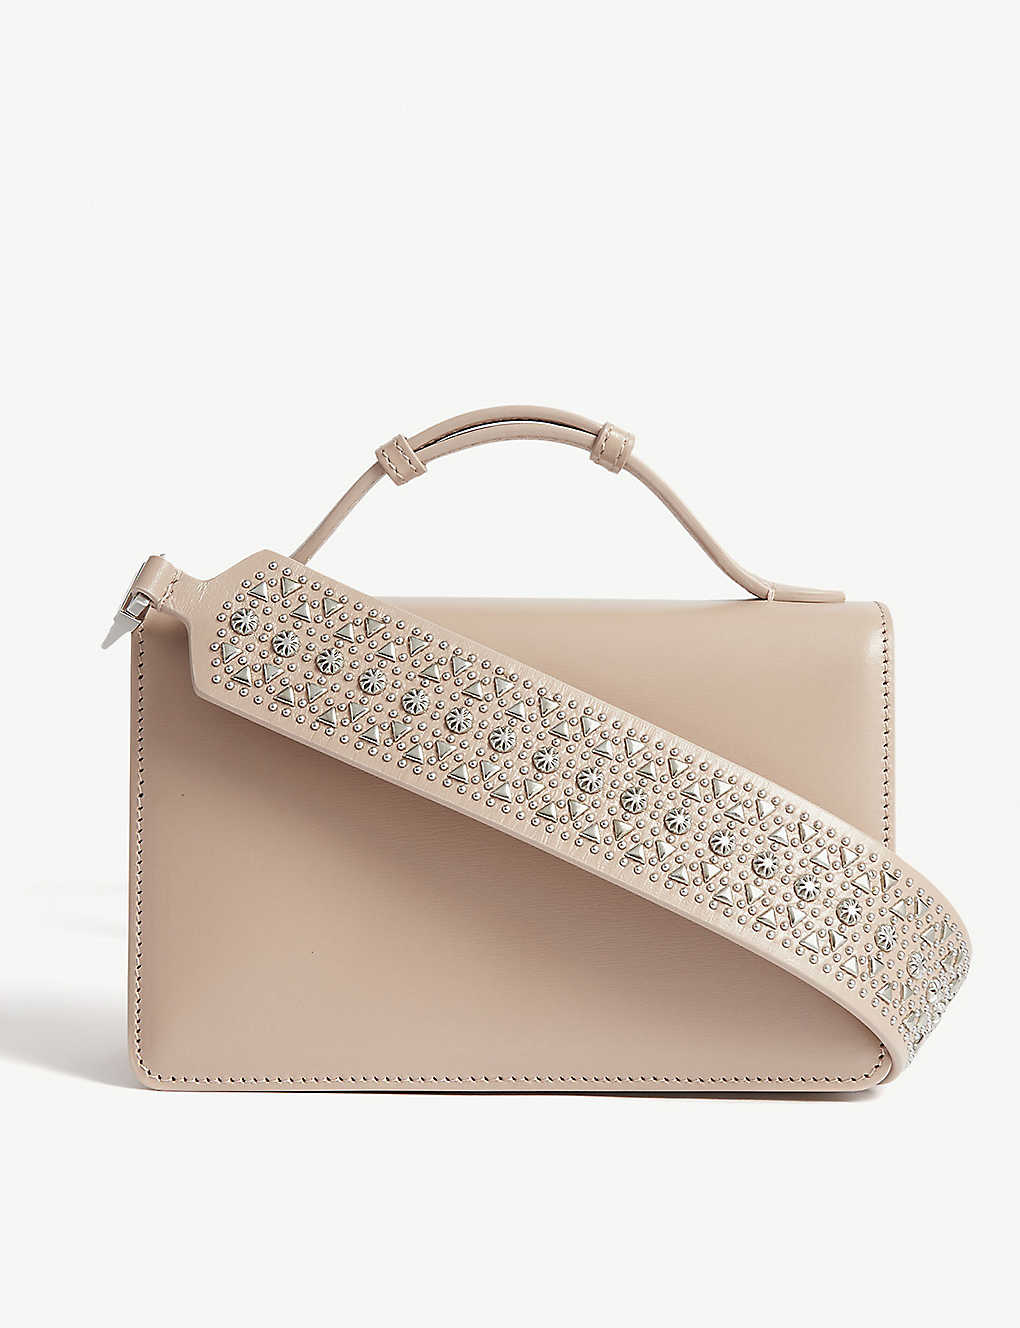 AZZEDINE ALAIA: Vienne small leather cross-body bag